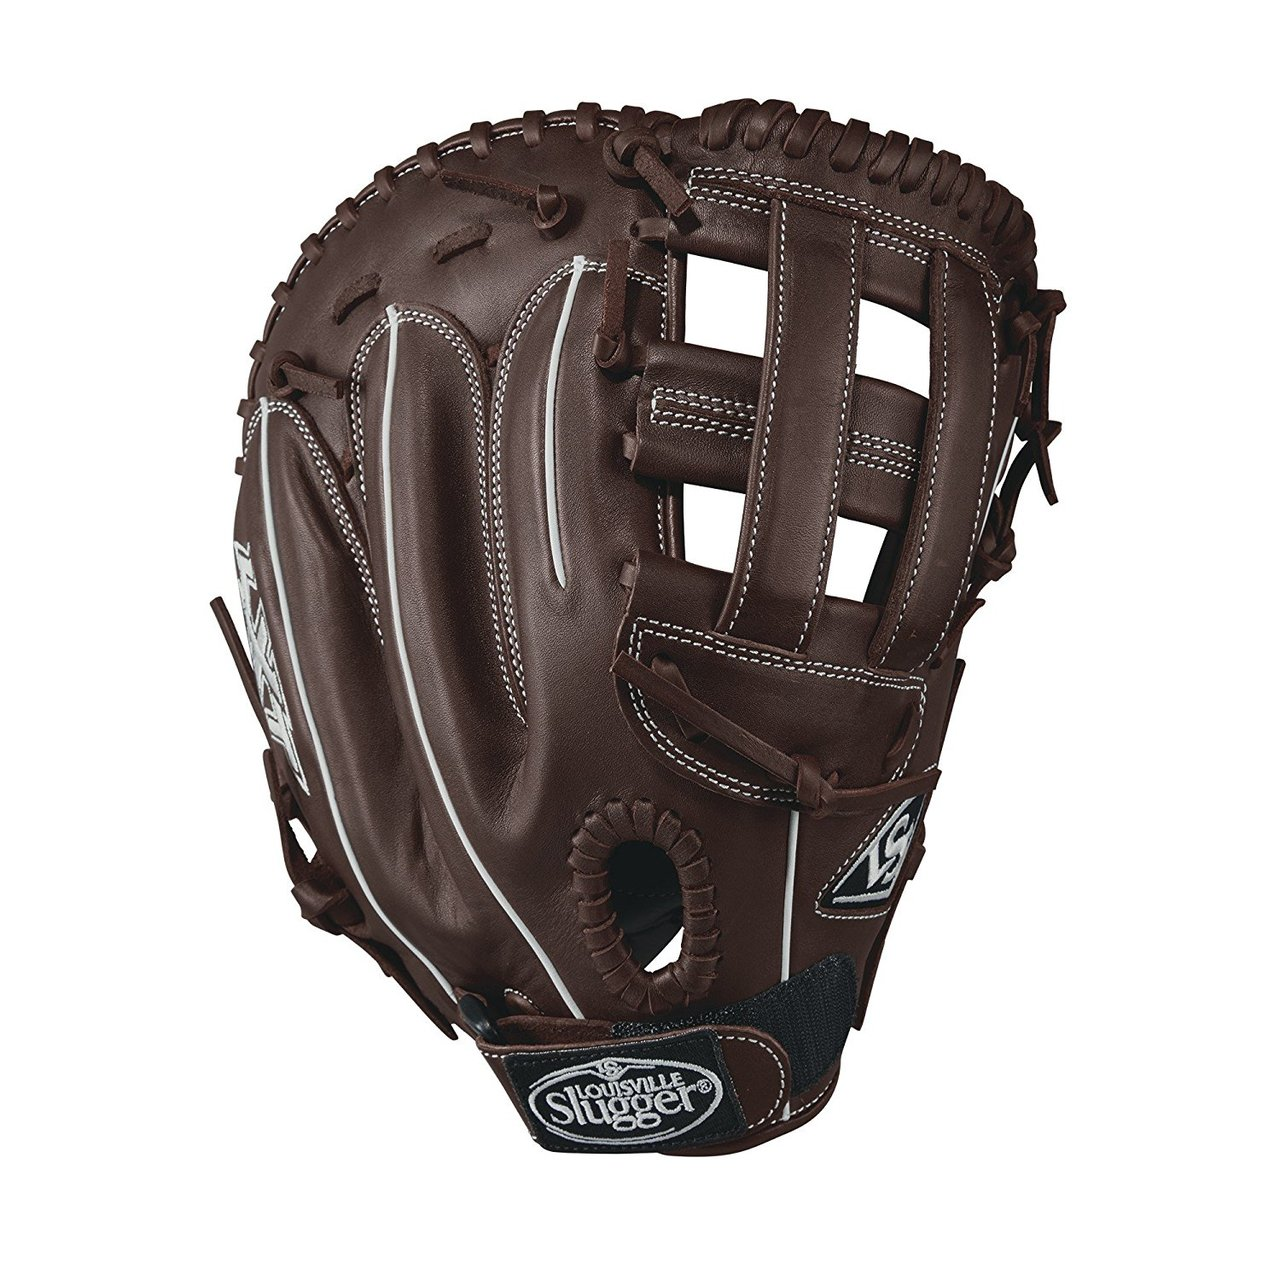 louisville-slugger-lxt-first-base-mitt-softball-glove-right-hand-throw-13 WTLLXRF17BM-RightHandThrow Louisville 887768498160 Used by the top players the LXT has established itself as